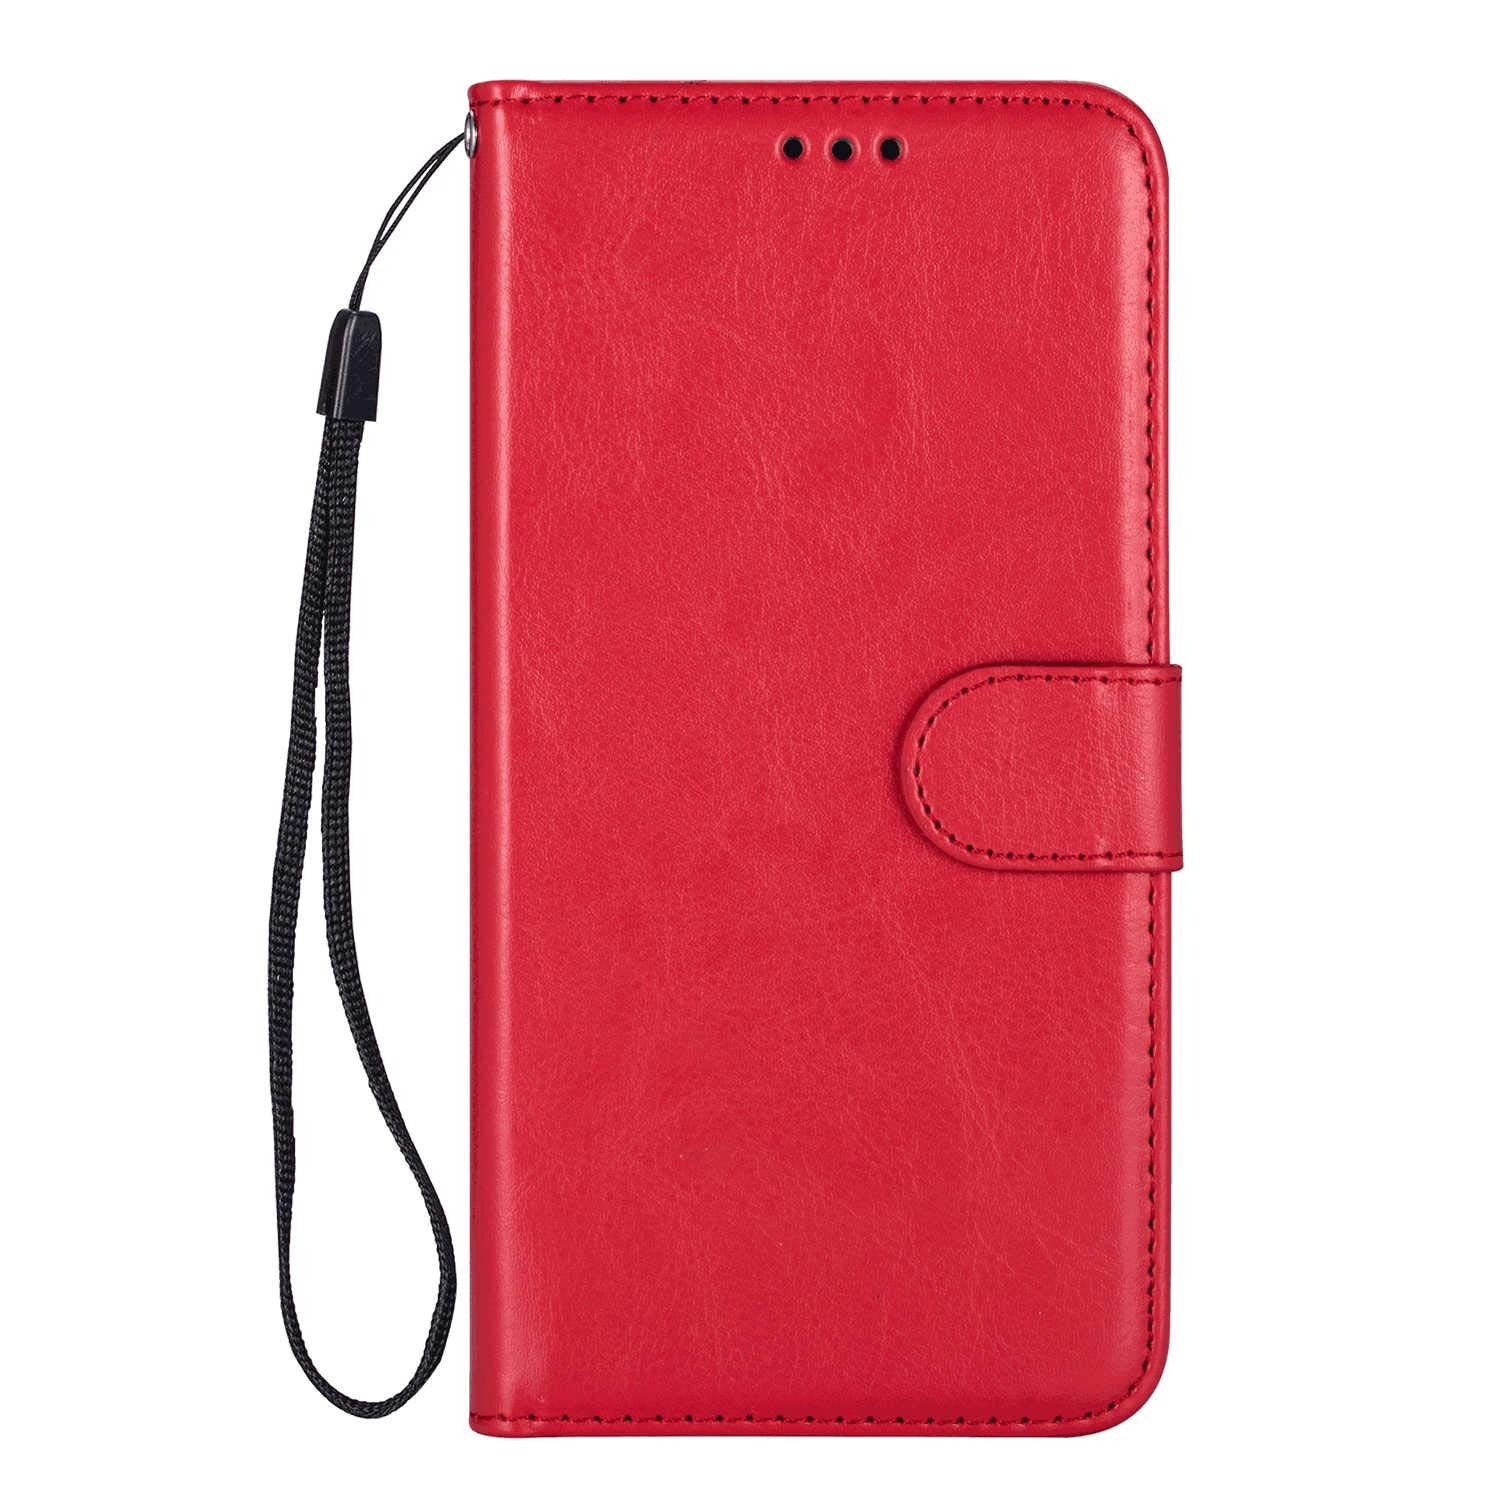 PU Leather Flip Cover Compatible with iPhone 11 Pro, Elegant red Wallet Case for iPhone 11 Pro